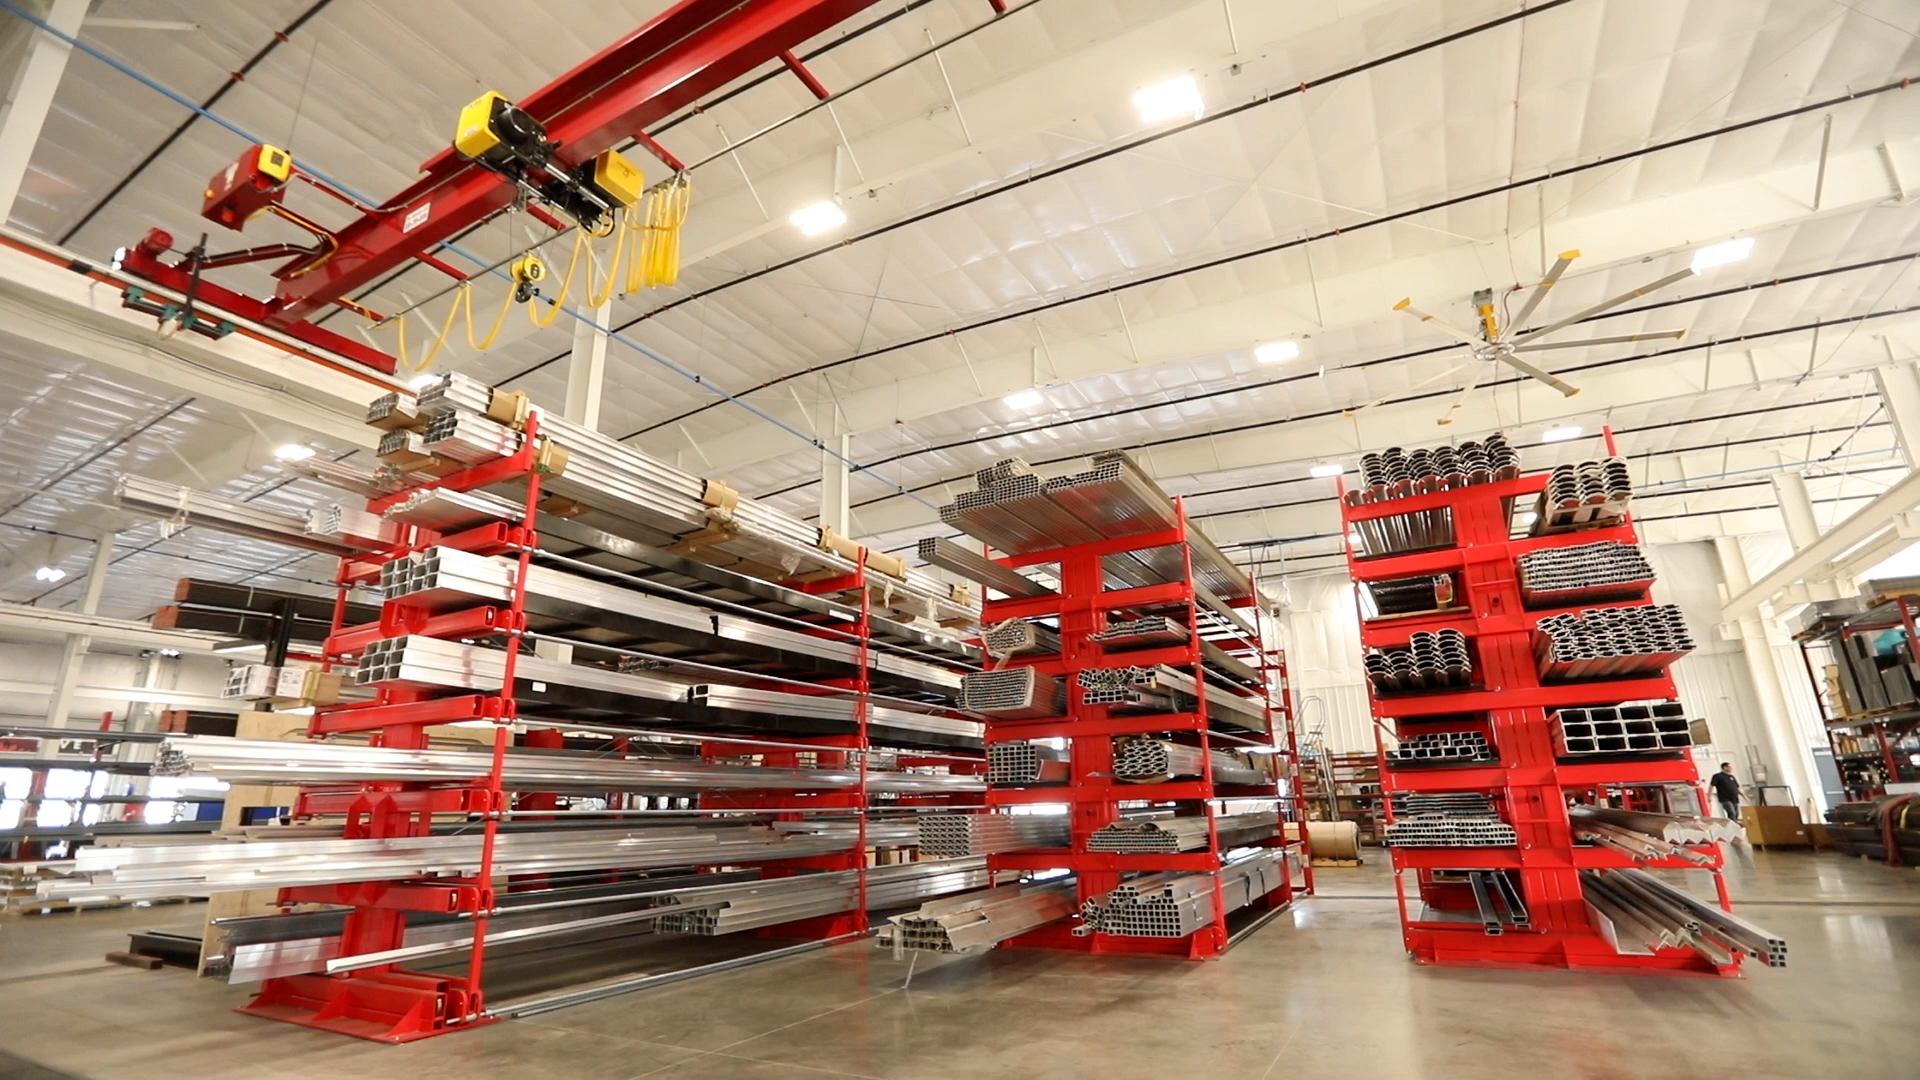 Backside of Red SpaceSaver roll-out cantilever racks